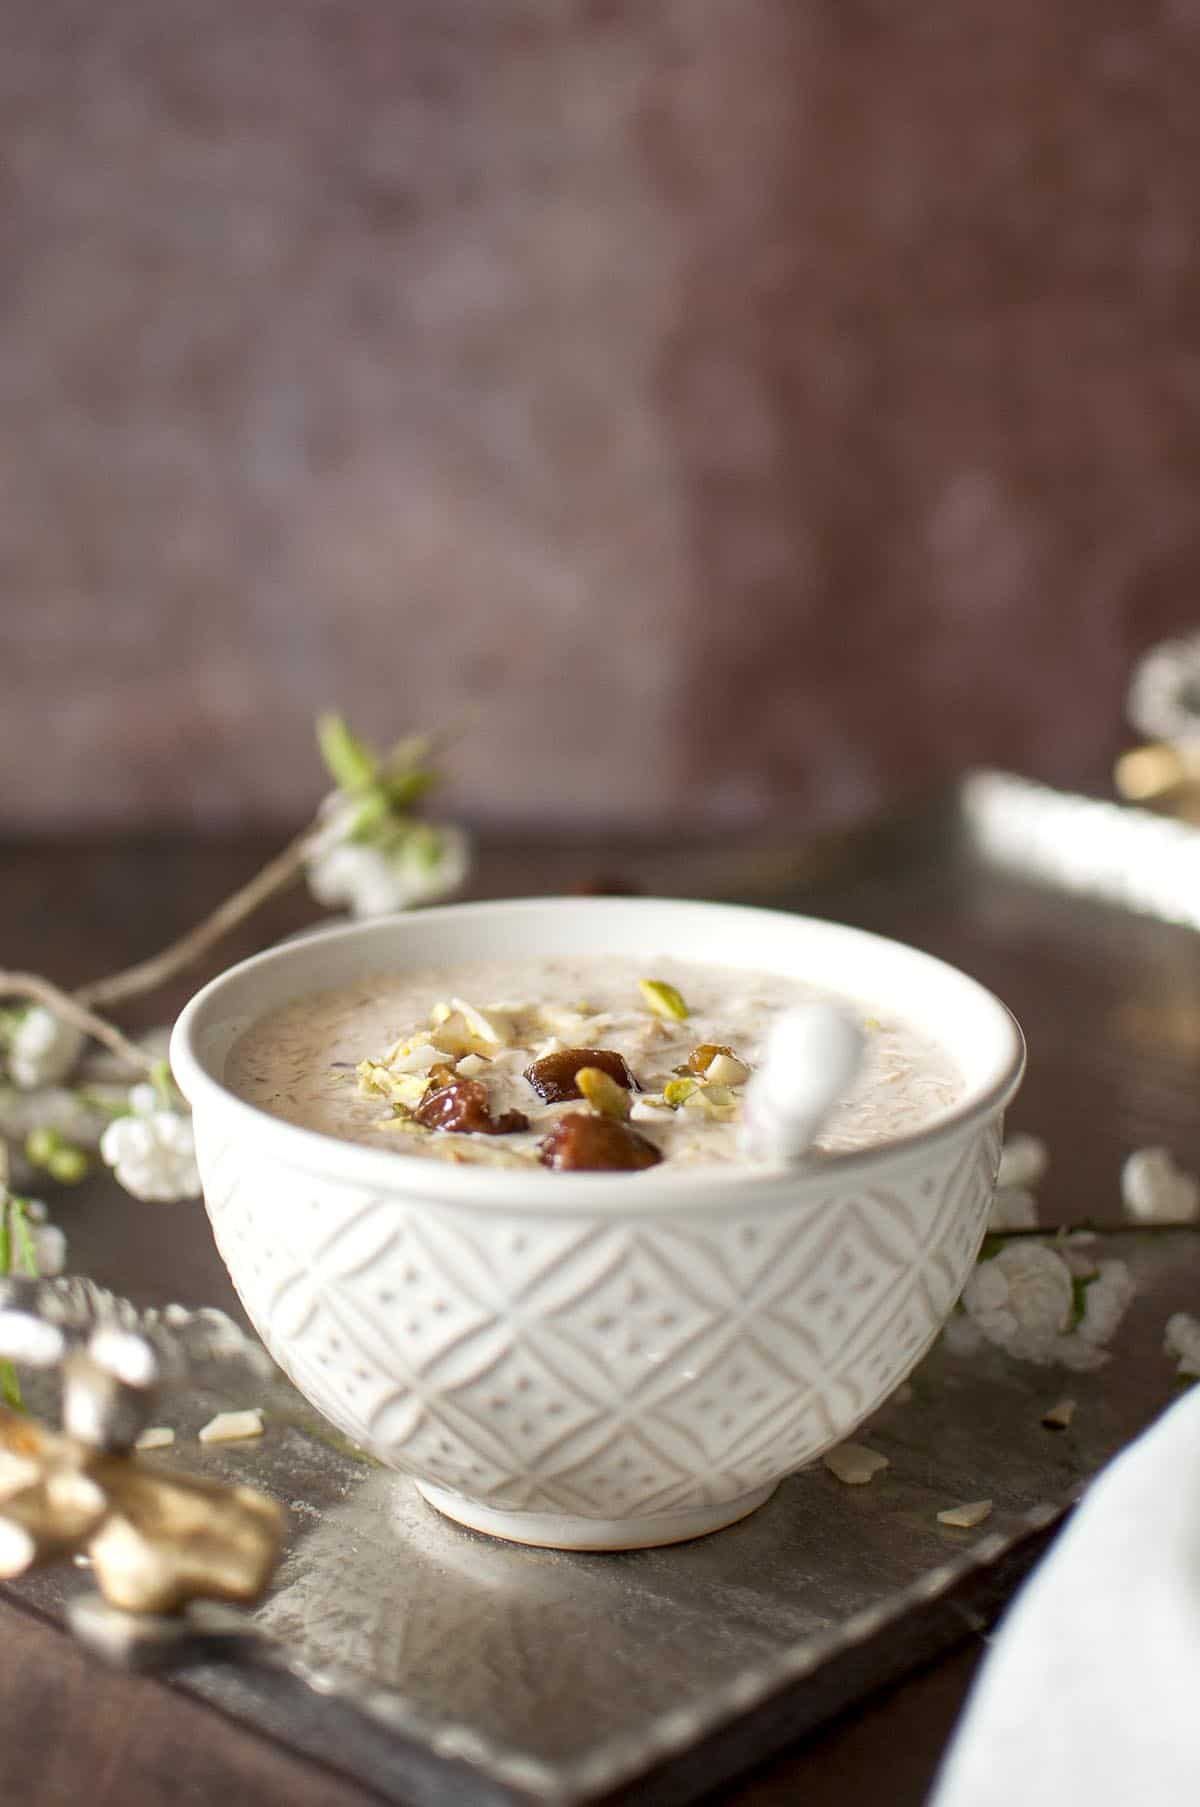 White bowl with sheer khurma with a spoon inside